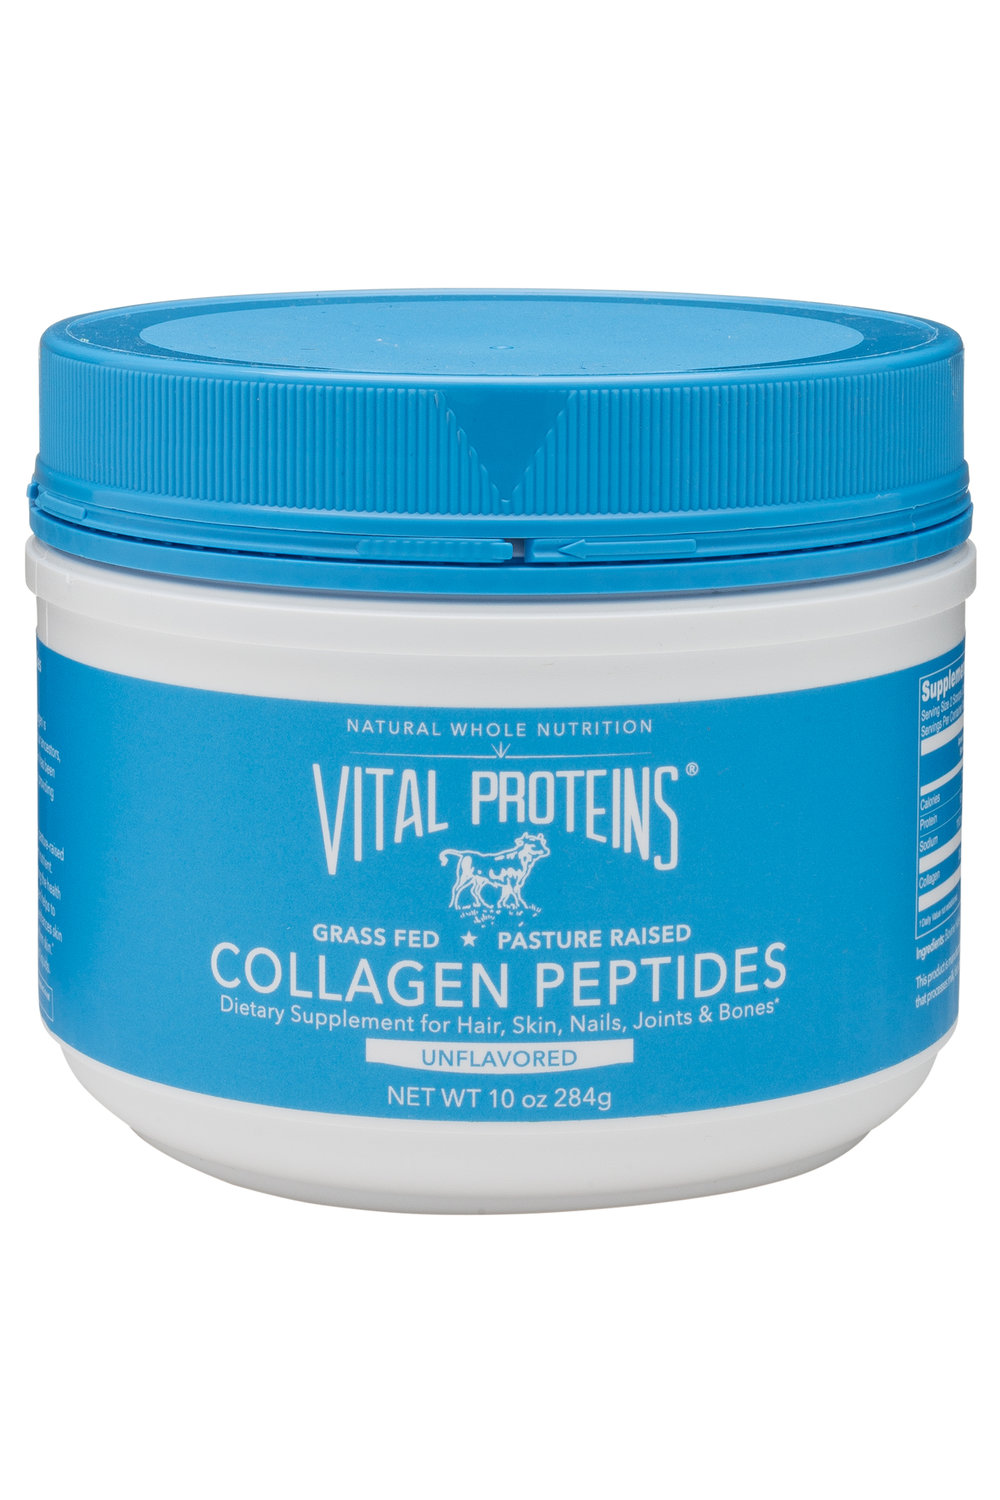 Vital Proteins Collagen Peptides Gluten-Free I use this everyday in my morning coffee & occasionally smoothies. It's great for my nails, hair & skin!